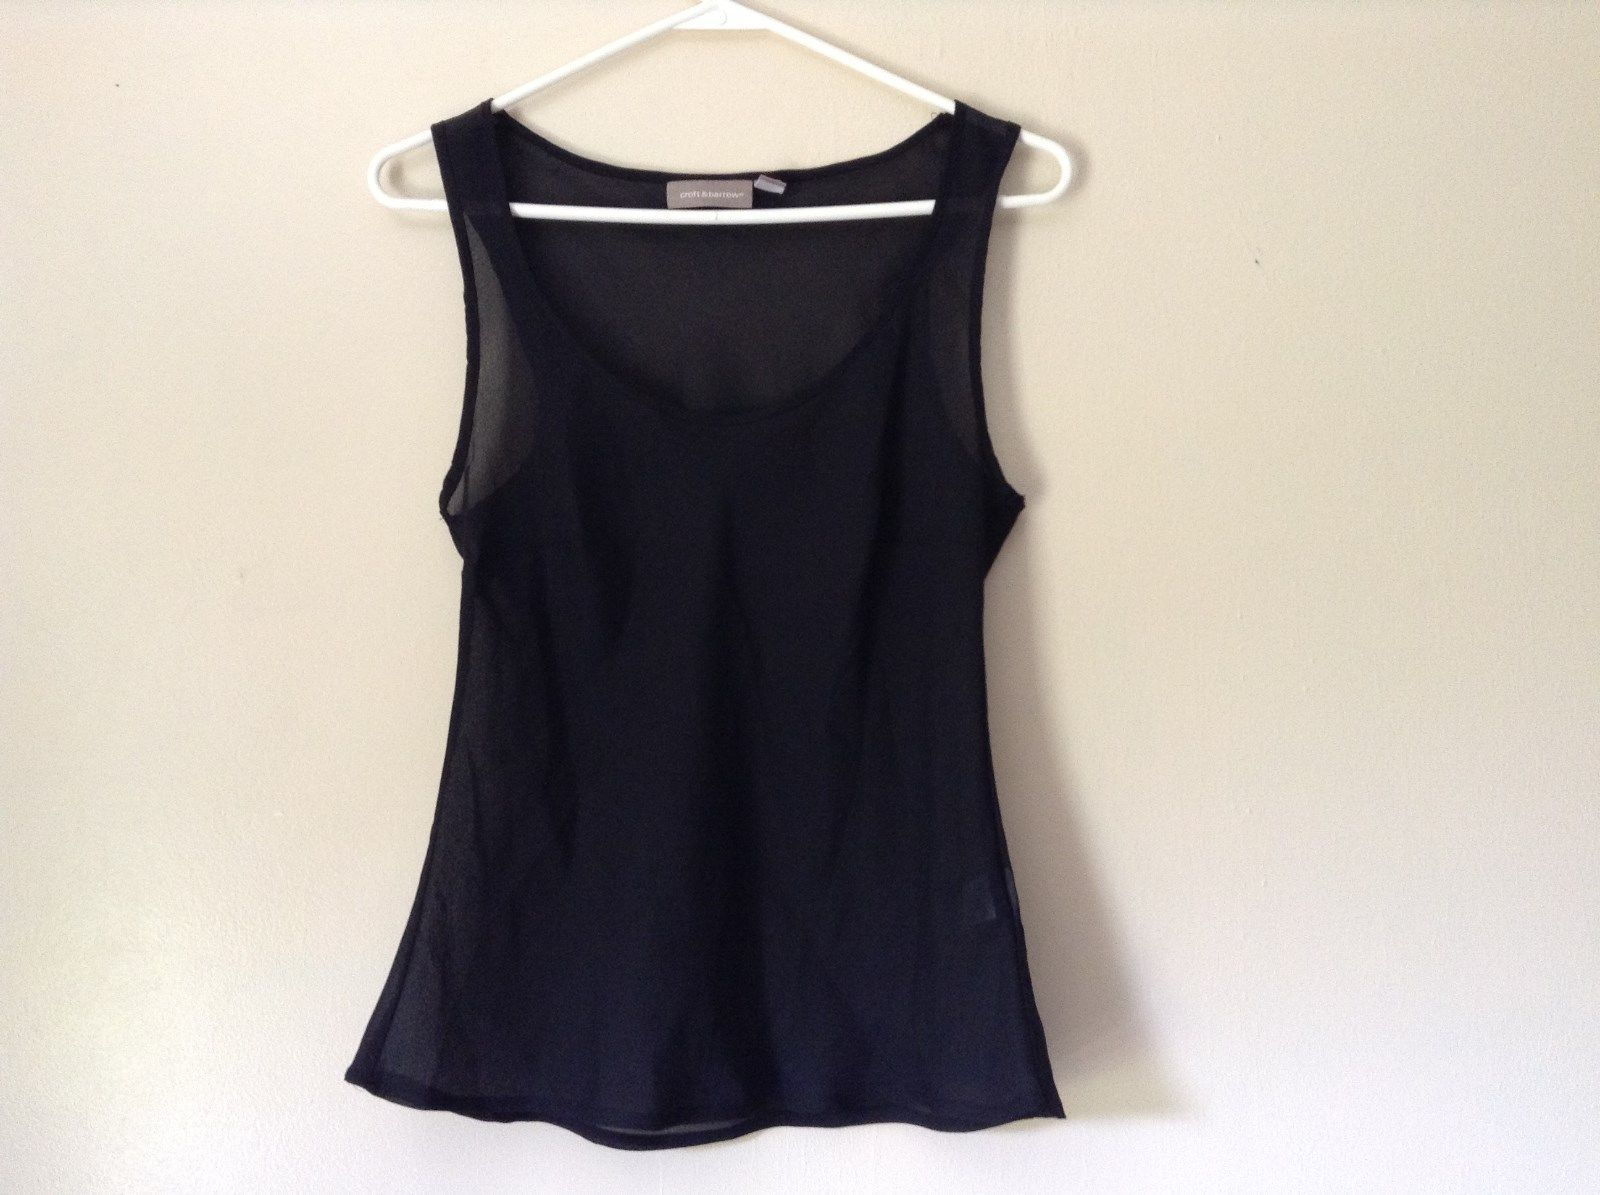 Primary image for Black See Through Tank Top Size Small 100 Percent Polyester Croft and Barrow